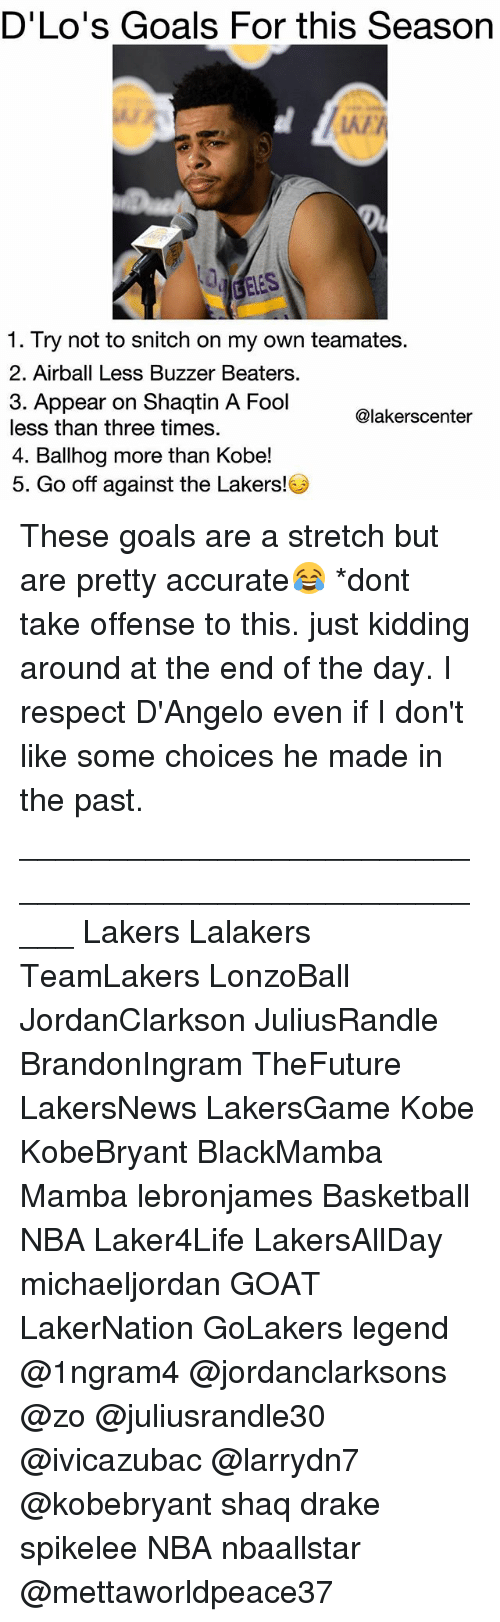 Basketball, Drake, and Goals: D'Lo's Goals For this Season  LAA  1. Try not to snitch on my own teamates  2. Airball Less Buzzer Beaters  3. Appear on Shaqtin A Fool  less than three times.  4. Ballhog more than Kobe!  5. Go off against the Lakers!  @lakerscenter These goals are a stretch but are pretty accurate😂 *dont take offense to this. just kidding around at the end of the day. I respect D'Angelo even if I don't like some choices he made in the past. _____________________________________________________ Lakers Lalakers TeamLakers LonzoBall JordanClarkson JuliusRandle BrandonIngram TheFuture LakersNews LakersGame Kobe KobeBryant BlackMamba Mamba lebronjames Basketball NBA Laker4Life LakersAllDay michaeljordan GOAT LakerNation GoLakers legend @1ngram4 @jordanclarksons @zo @juliusrandle30 @ivicazubac @larrydn7 @kobebryant shaq drake spikelee NBA nbaallstar @mettaworldpeace37